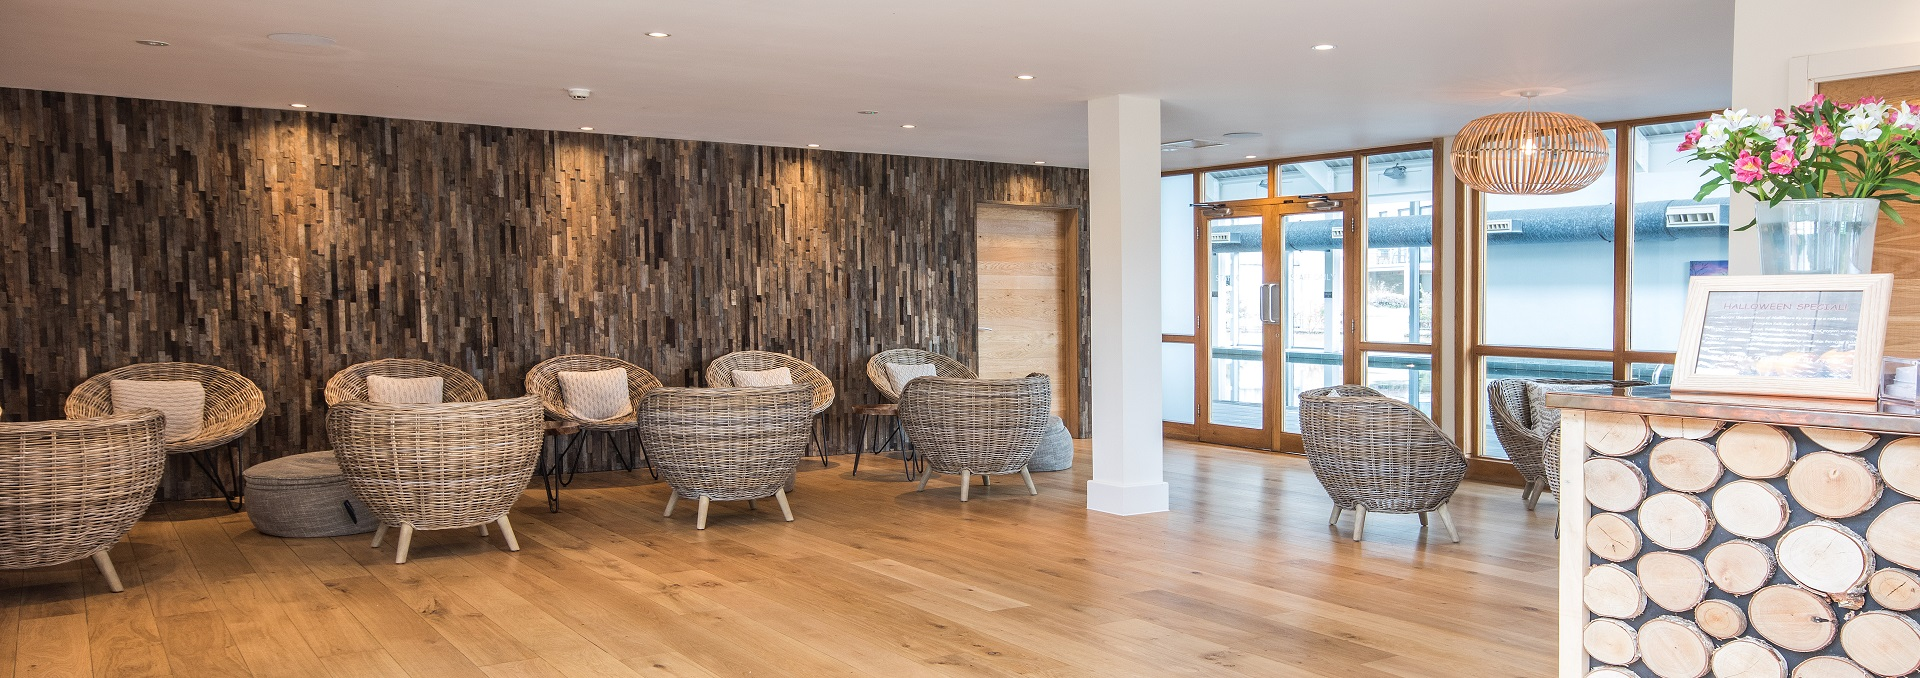 Pleasing Luxury Cotswolds Spa Break Self Catering Lakeside Holidays Home Interior And Landscaping Palasignezvosmurscom